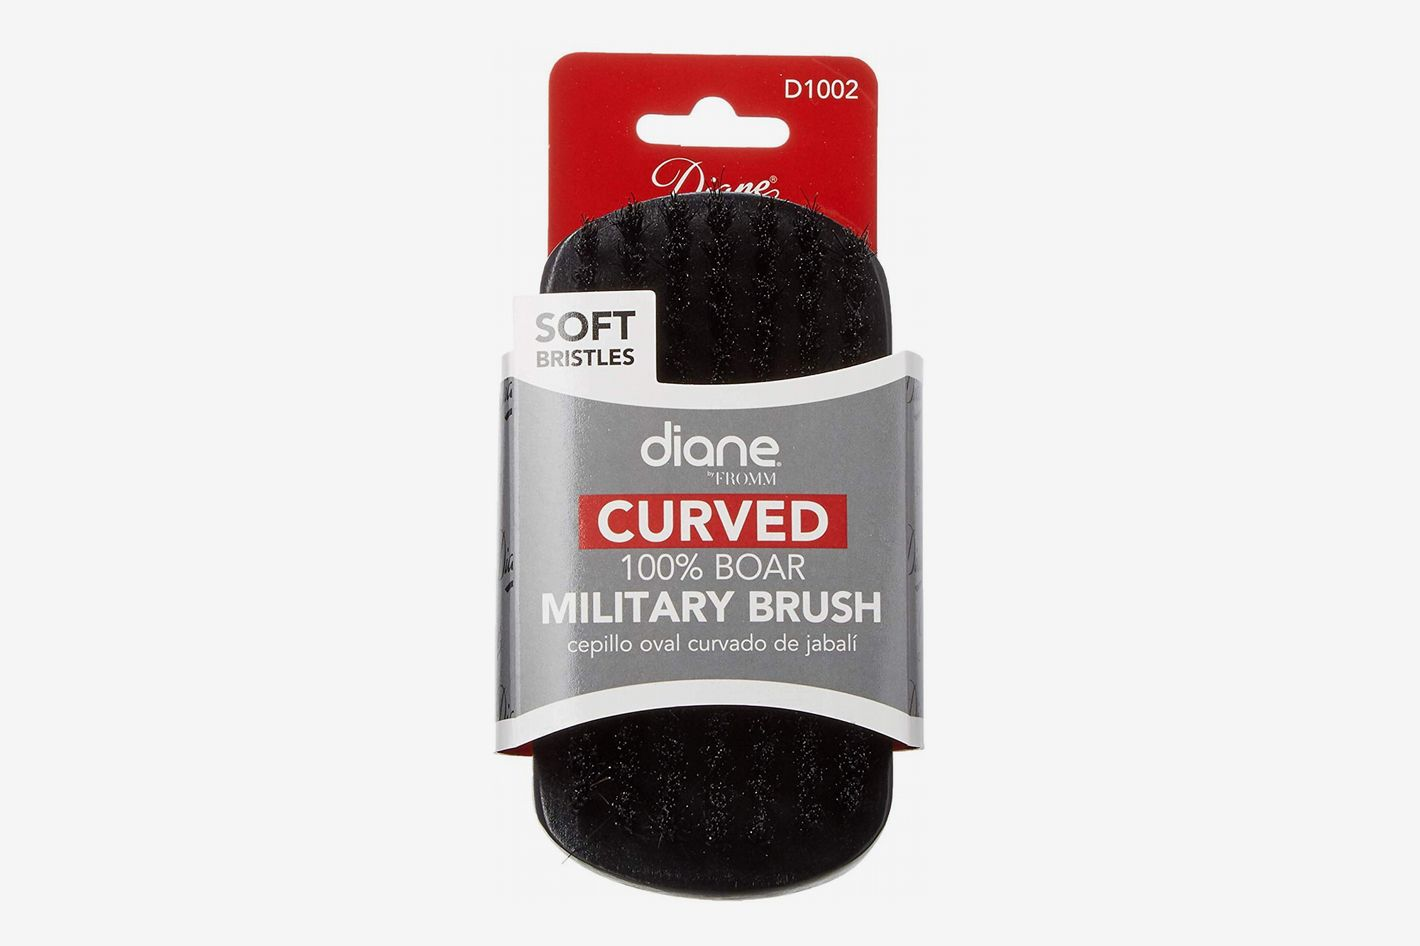 Diane Fromm Curved 100% Boar Military Brush Soft Bristles